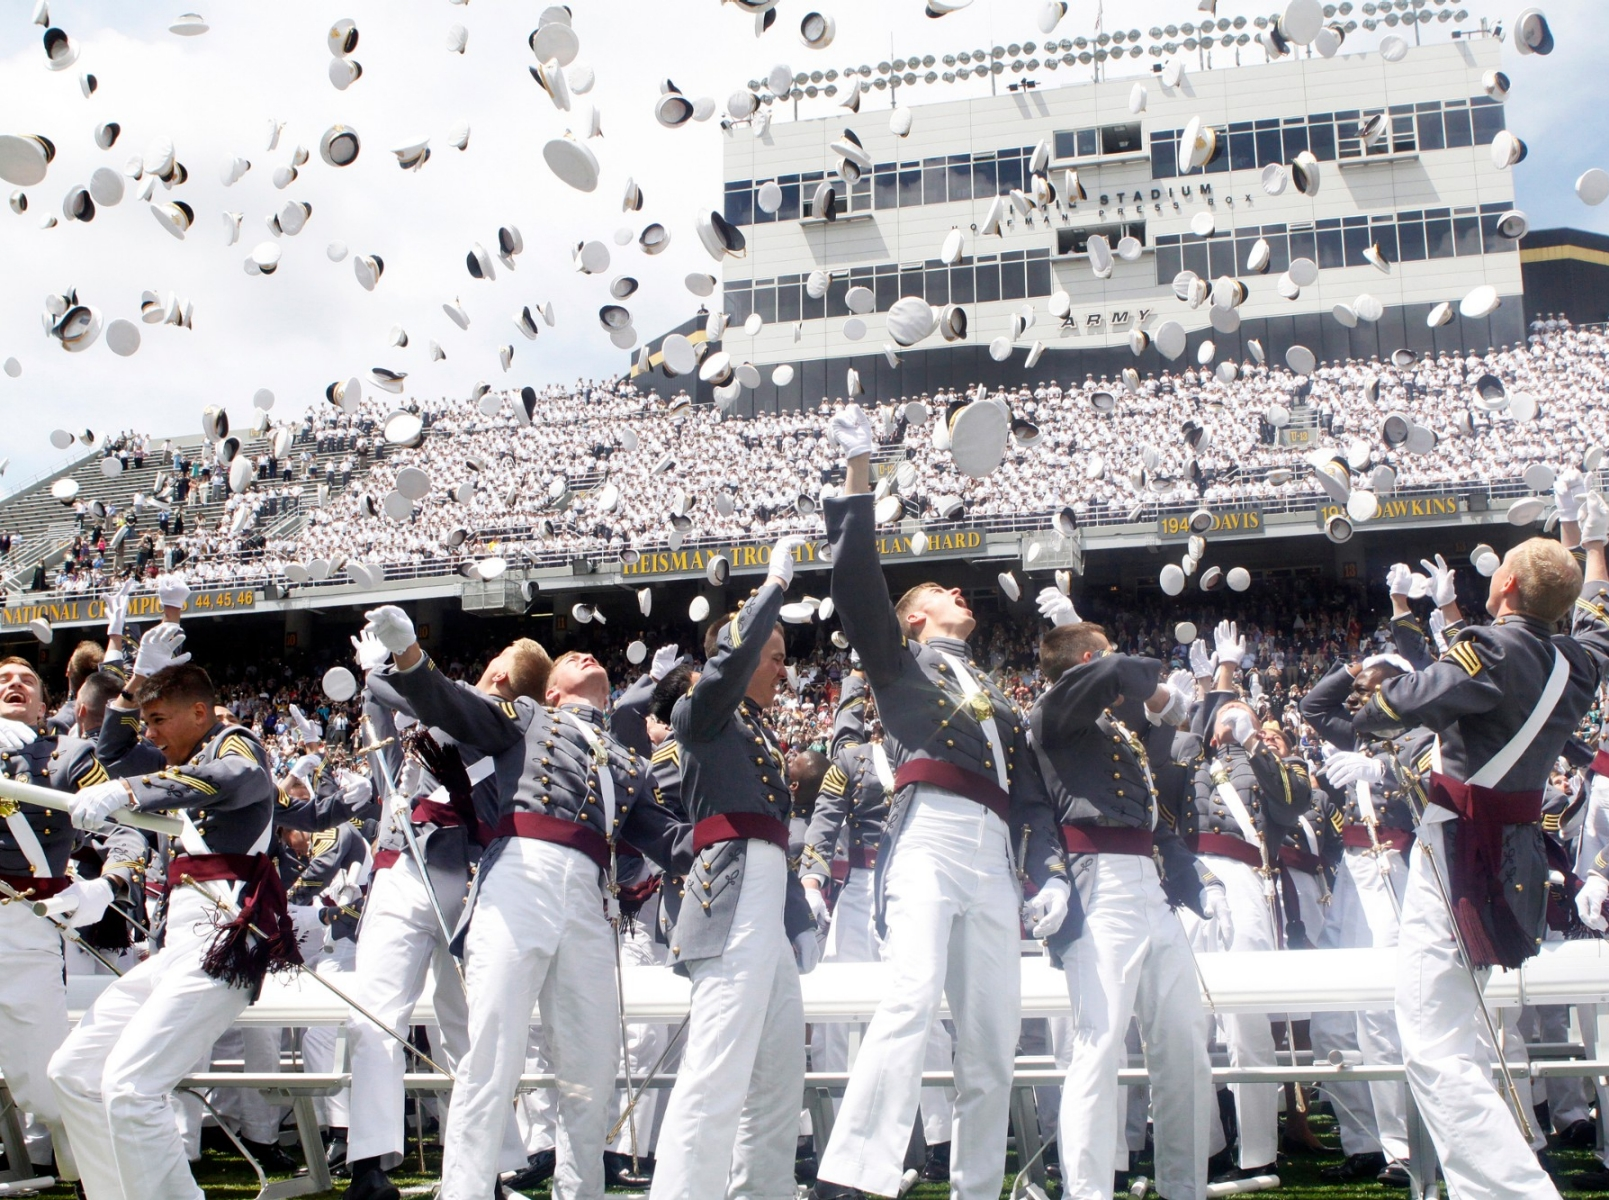 usafa admissions essay Get united states air force academy tuition and financial aid information, plus scholarships, admissions rates, and more over 1 million high school students are earning no-essay college.